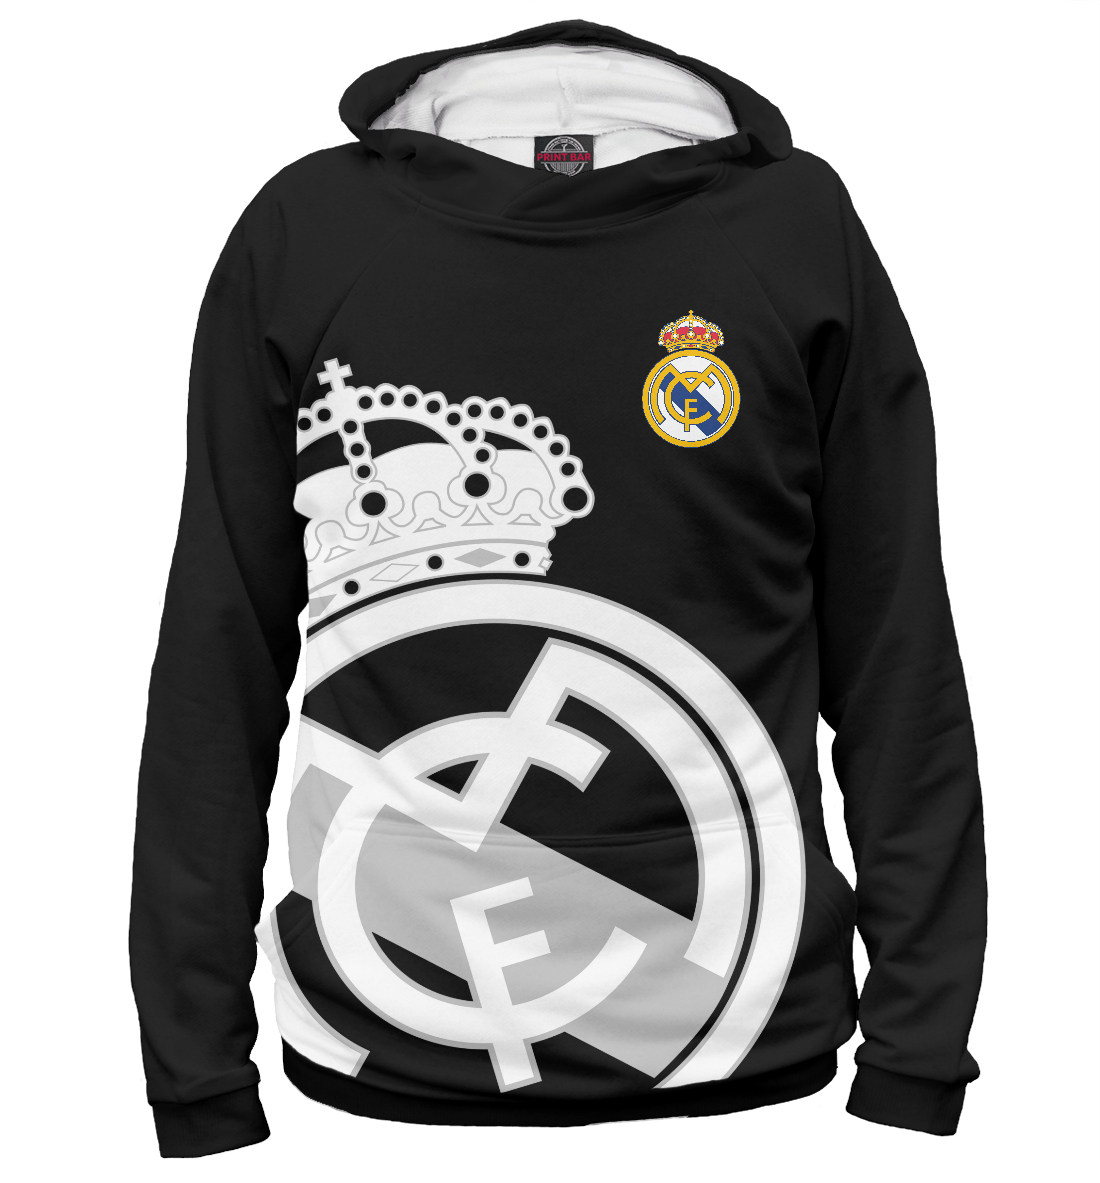 Купить Real Madrid Black&White, Printbar, Худи, REA-604934-hud-2